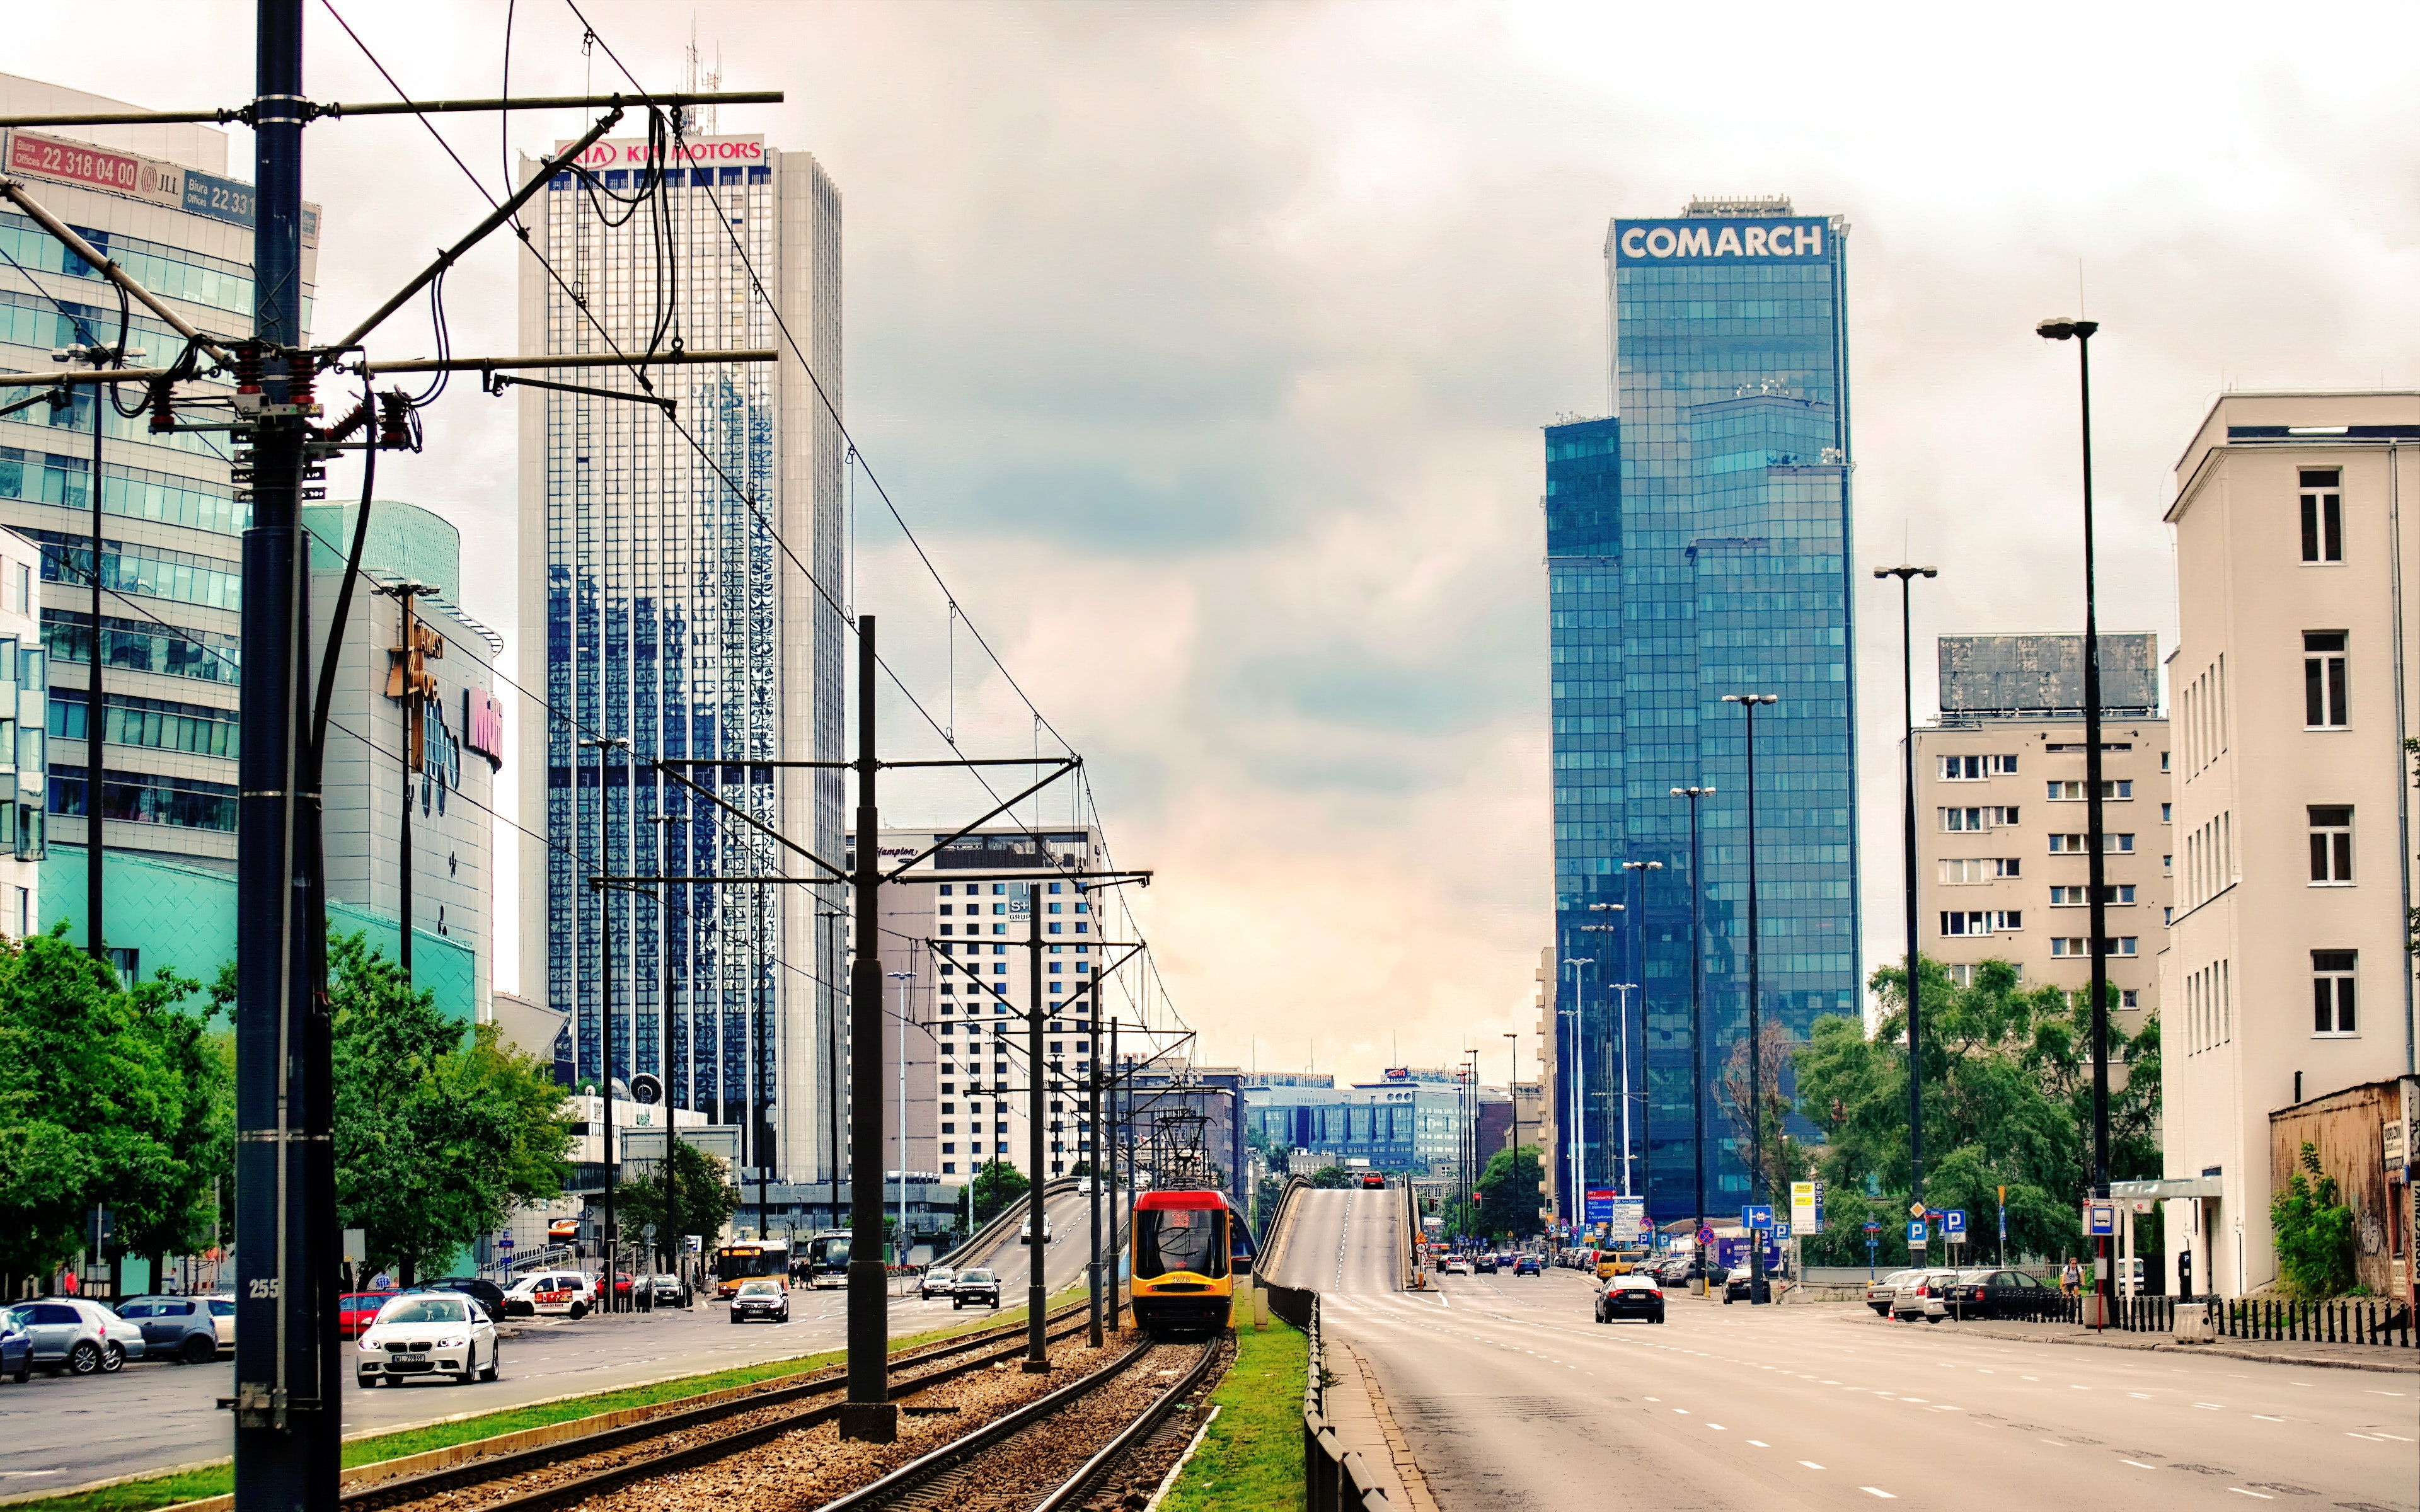 High Rise Buildings Under Gray Cloudy Sky, Architecture, Road, Trees, Transportation system, HQ Photo